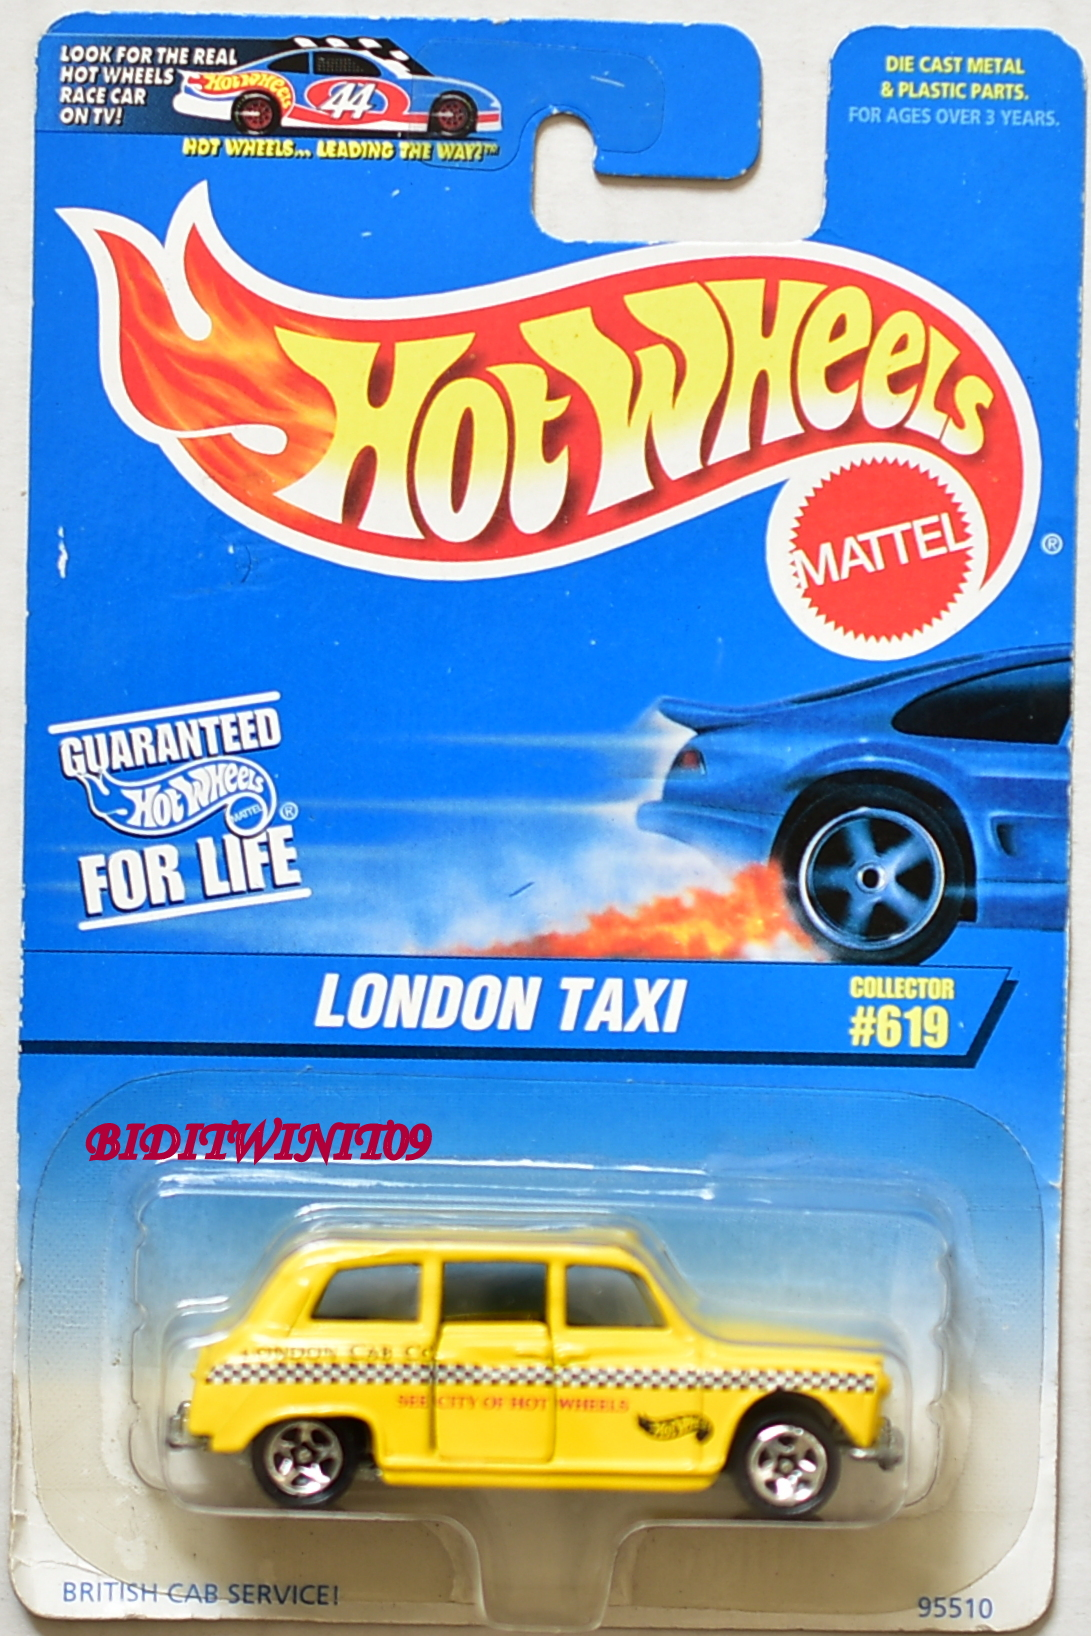 HOT WHEELS 1997 LONDON TAXI COLLECT. #619 YELLOW LONDON CAB